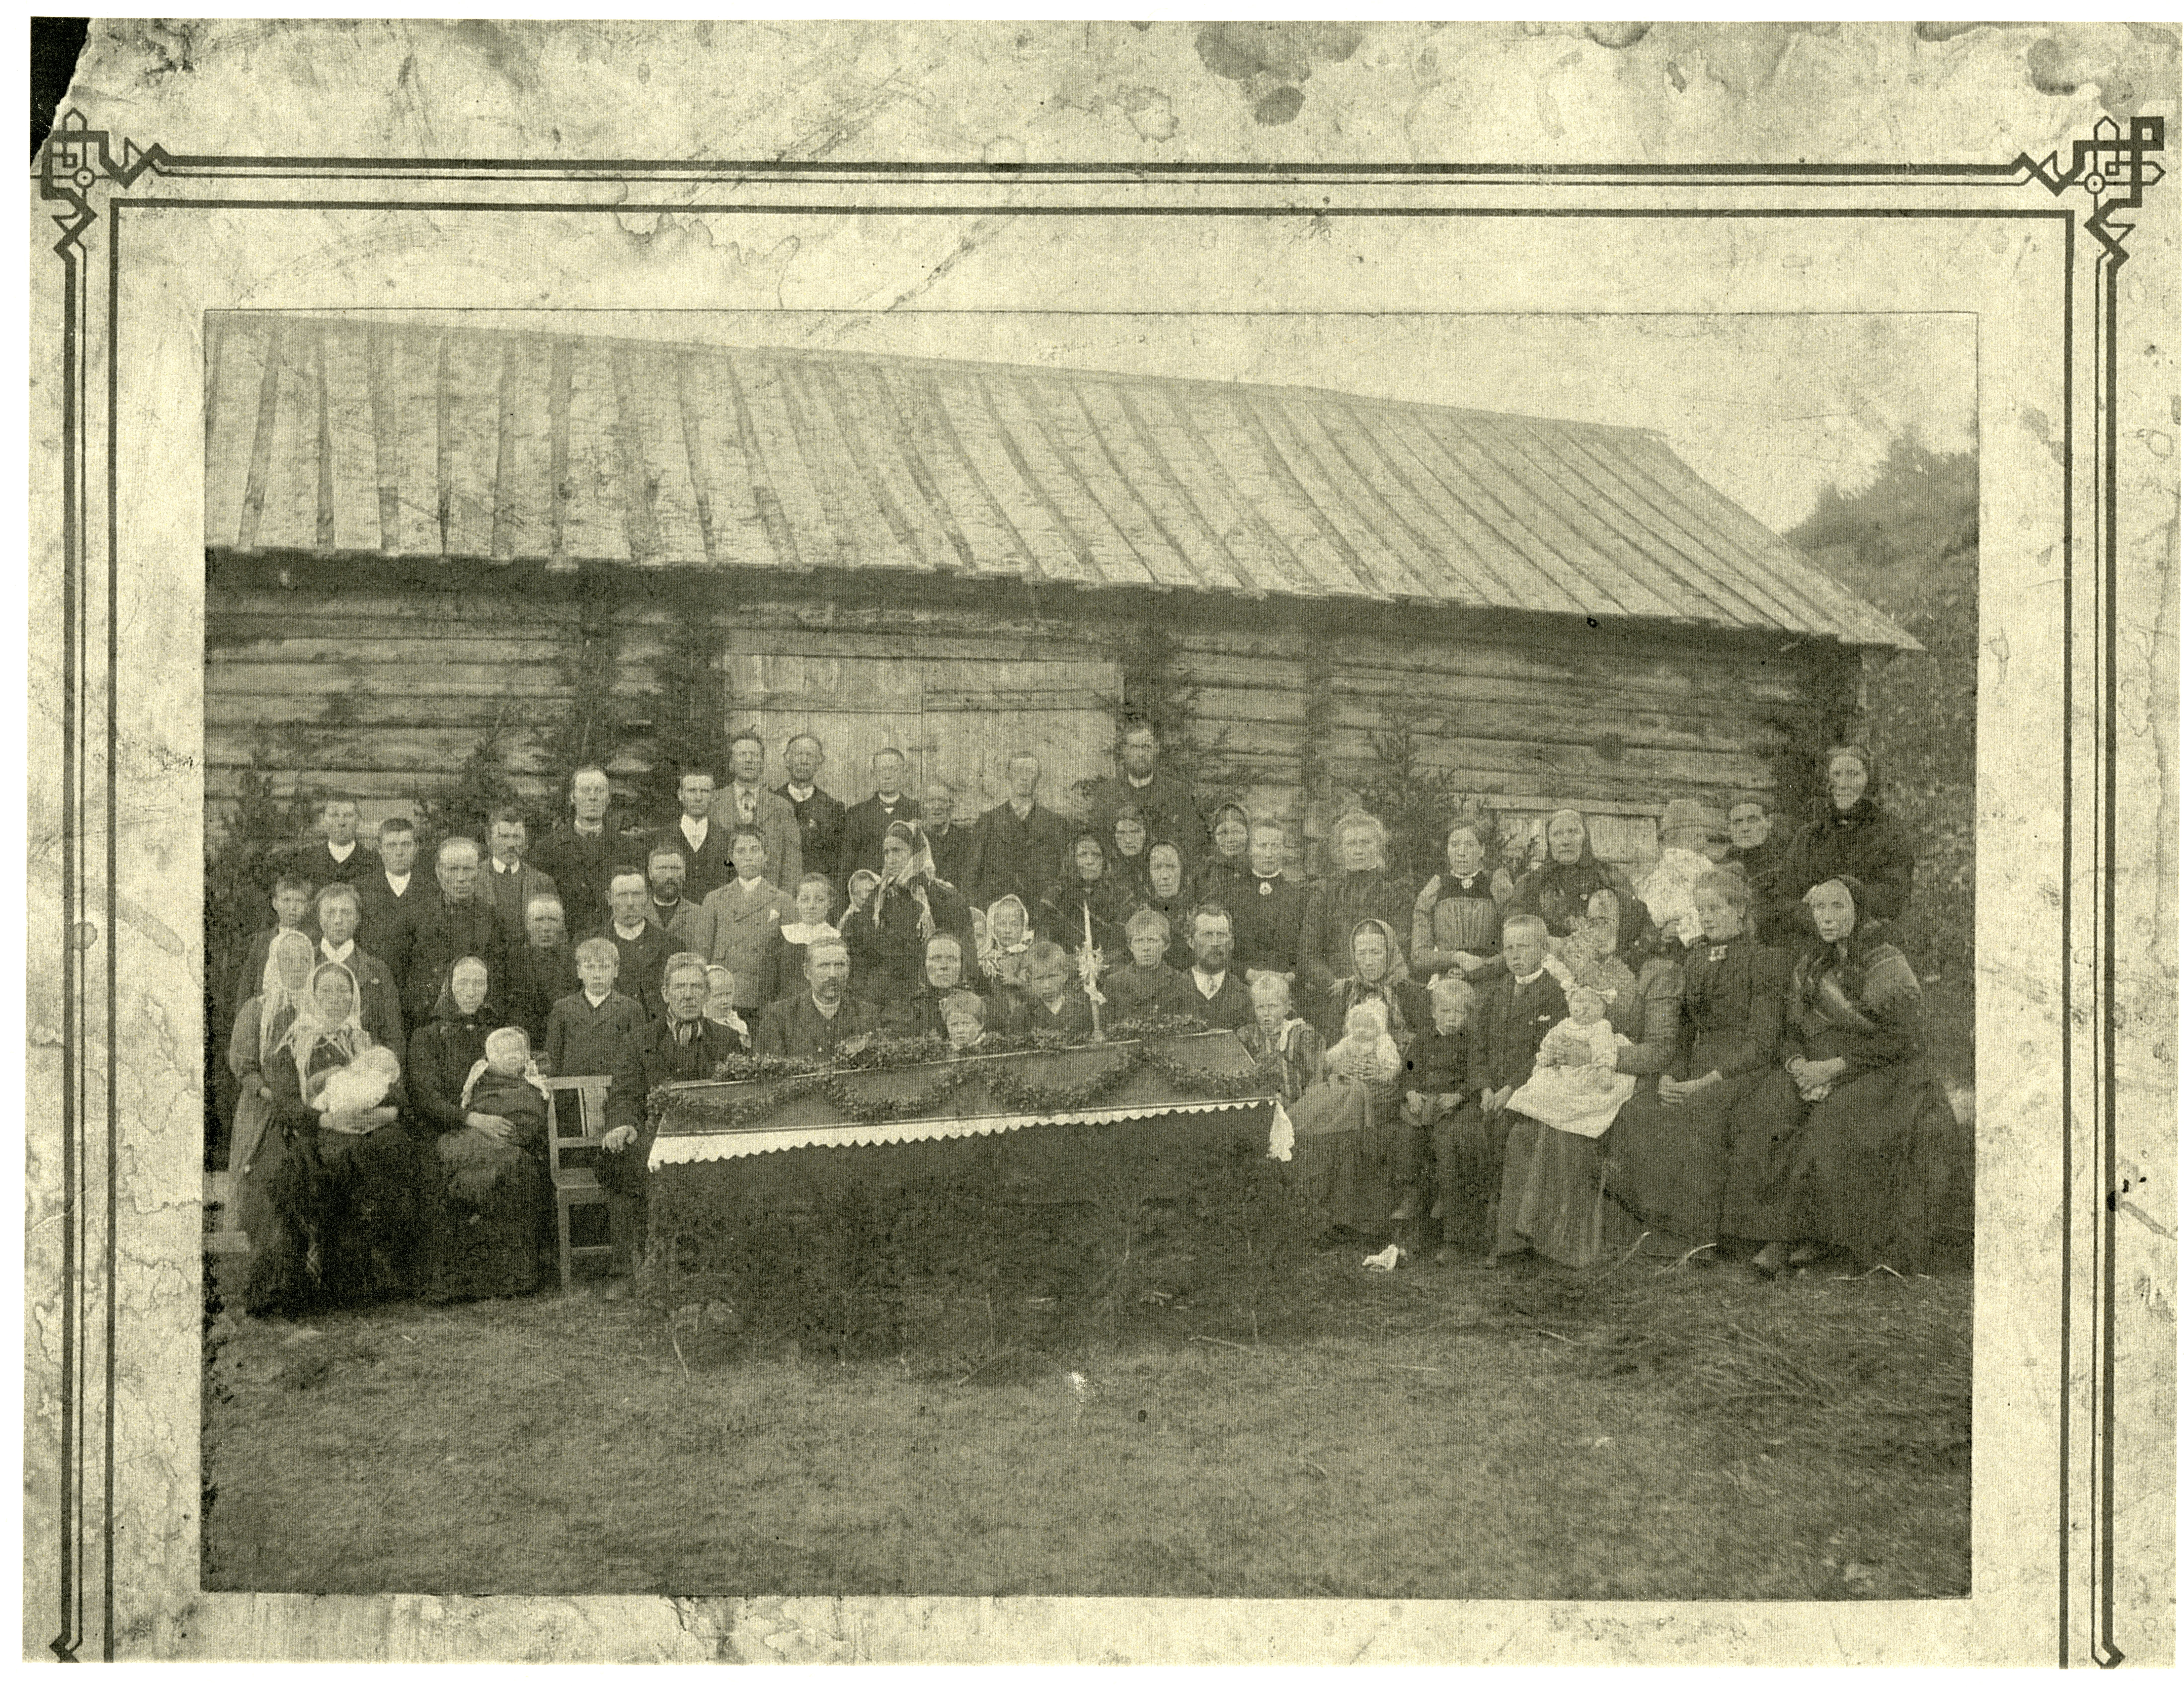 Large gathering of men, women, and children for a funeral.